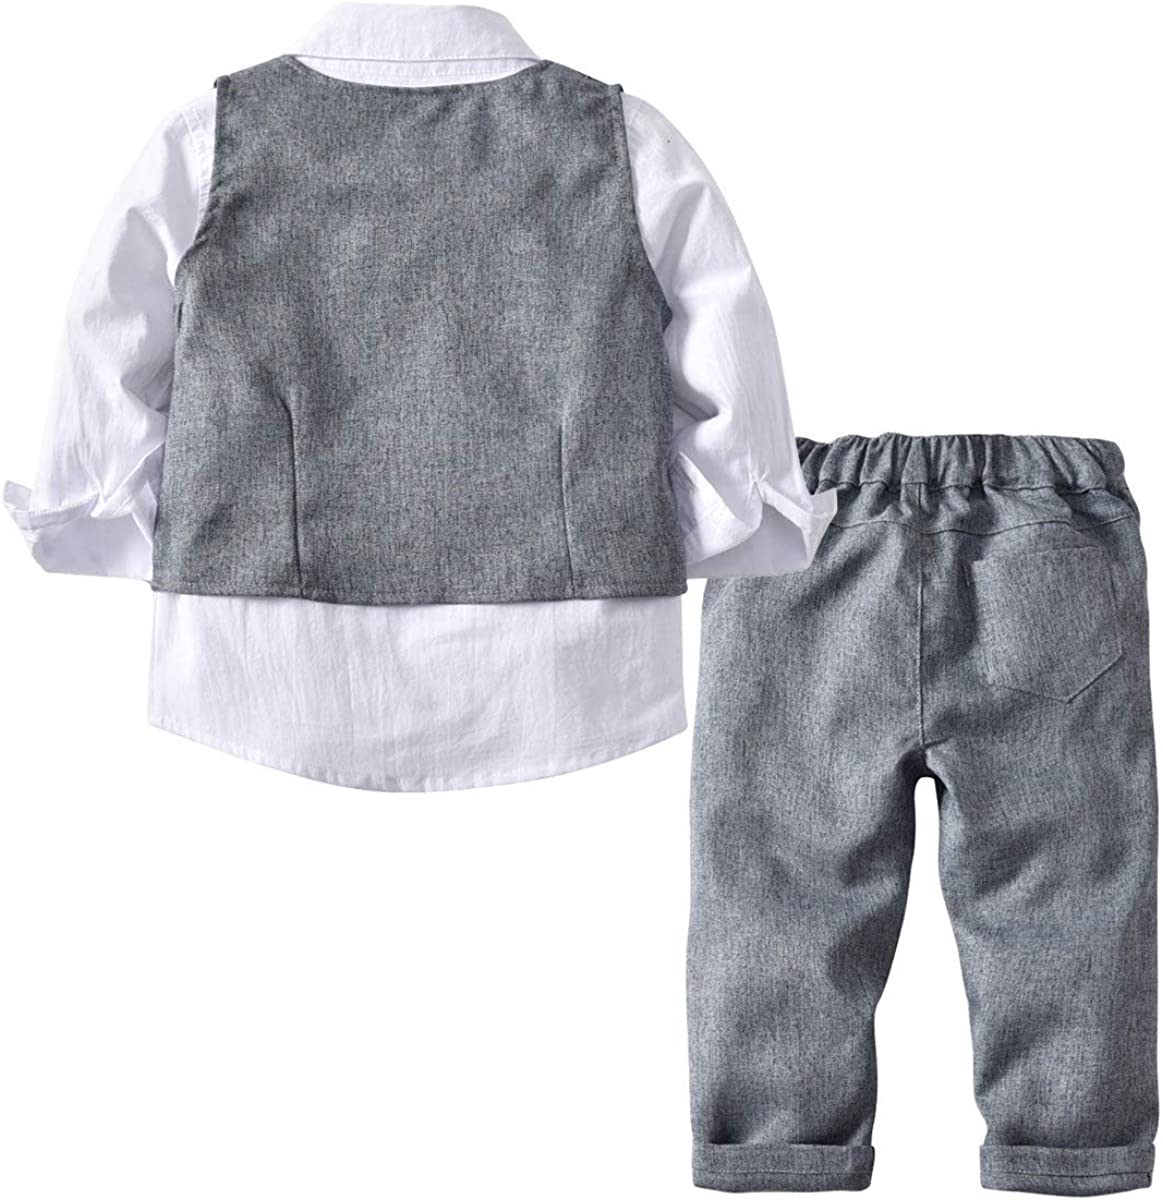 Boy 4 Pcs Clothing Set Shirt Vest and Pants BINIDUCKLING Kid Formal Suit with Bow Tie